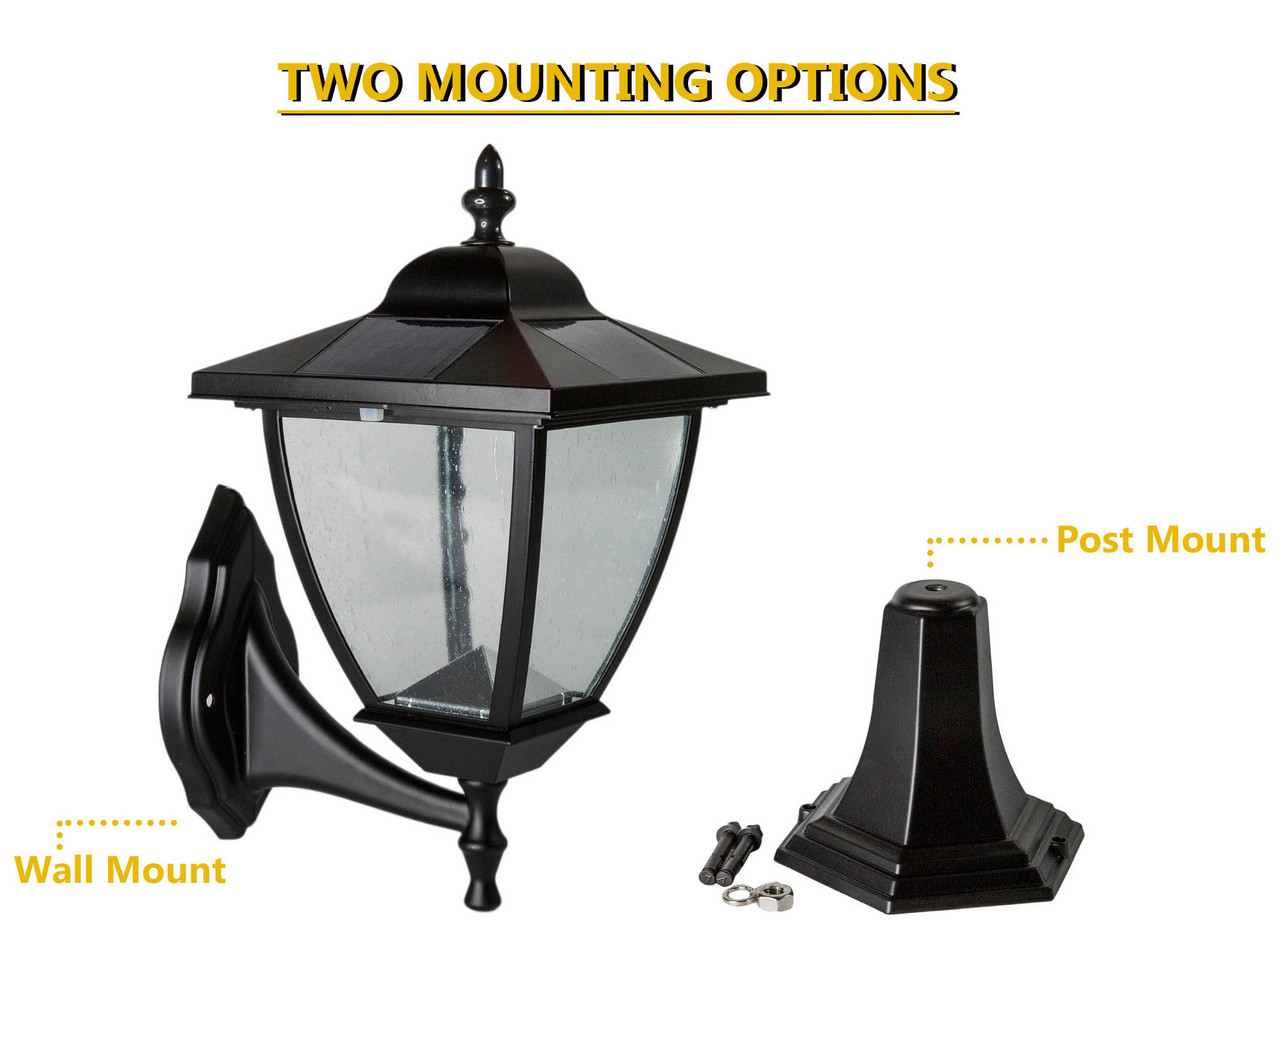 Mounting Options for the Classy Caps' Elegante Solar Lamp